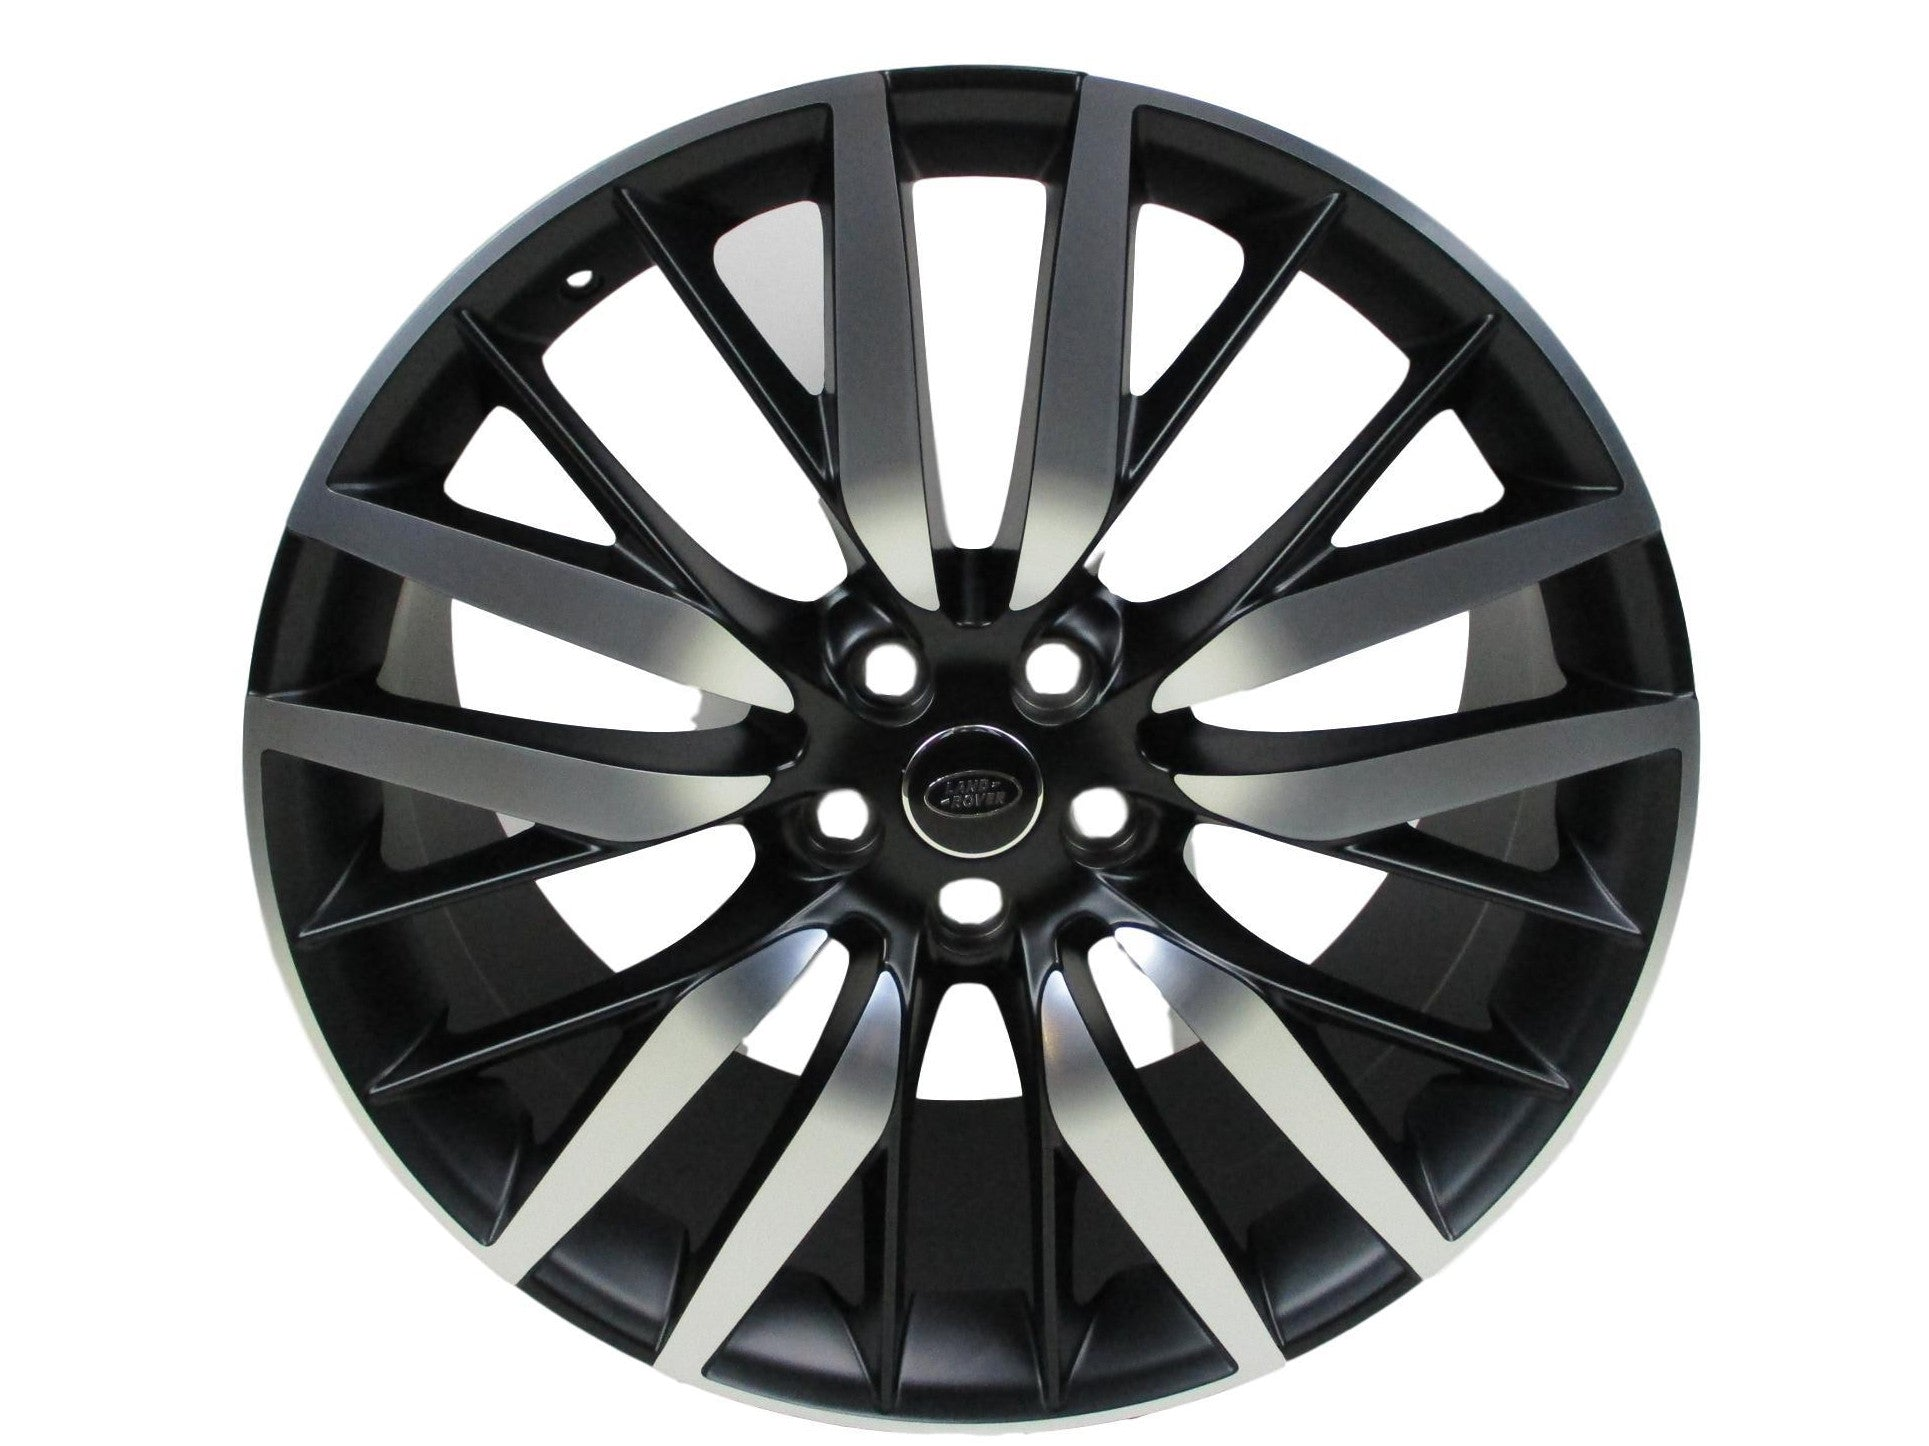 22 inch SVR Style Range Rover Alloy Wheels Matte Black With Diamond Turn